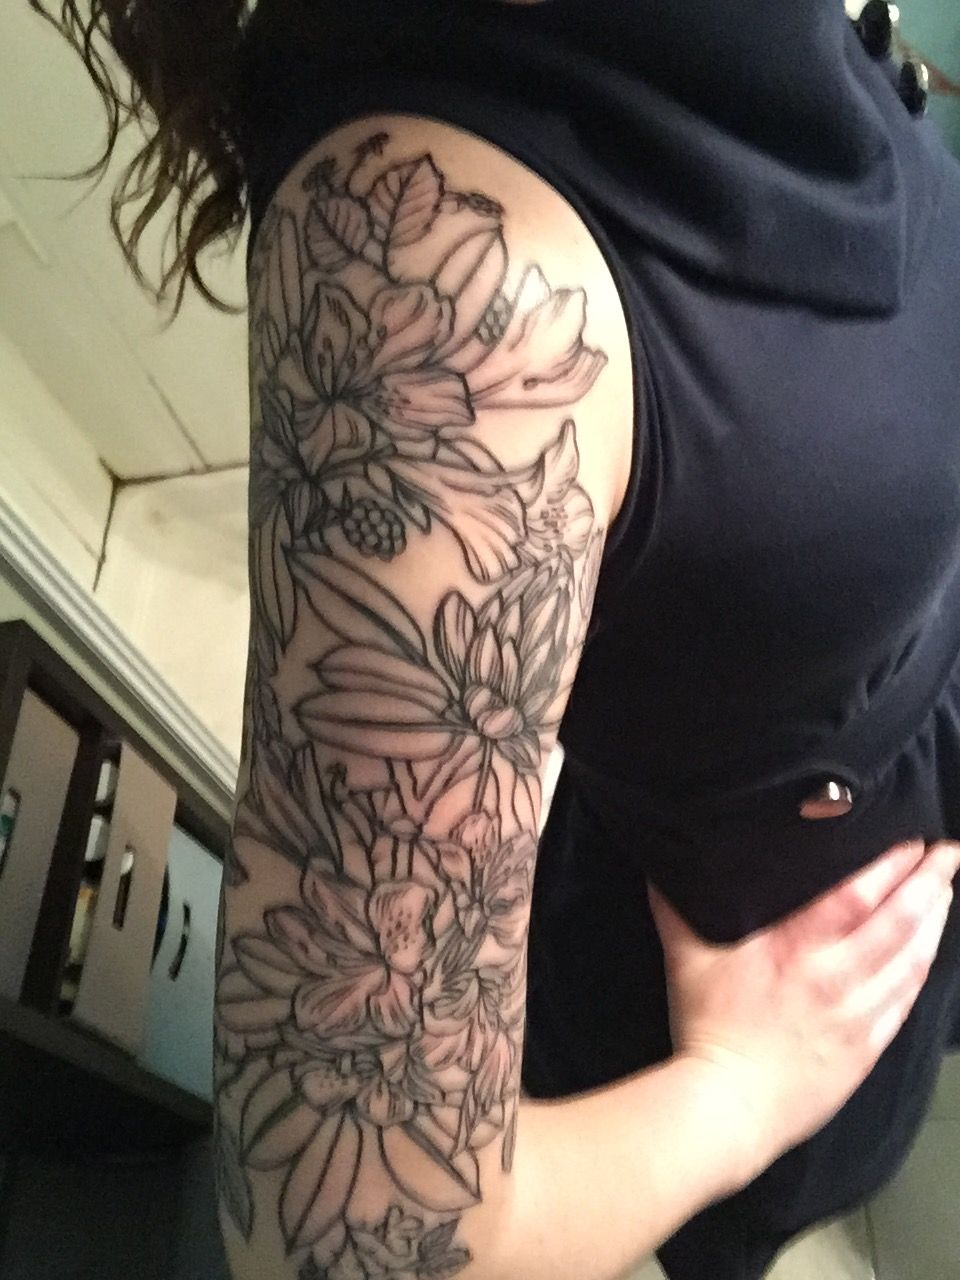 Floral/rhododendron tattoo with blackberries! Tattoos, I